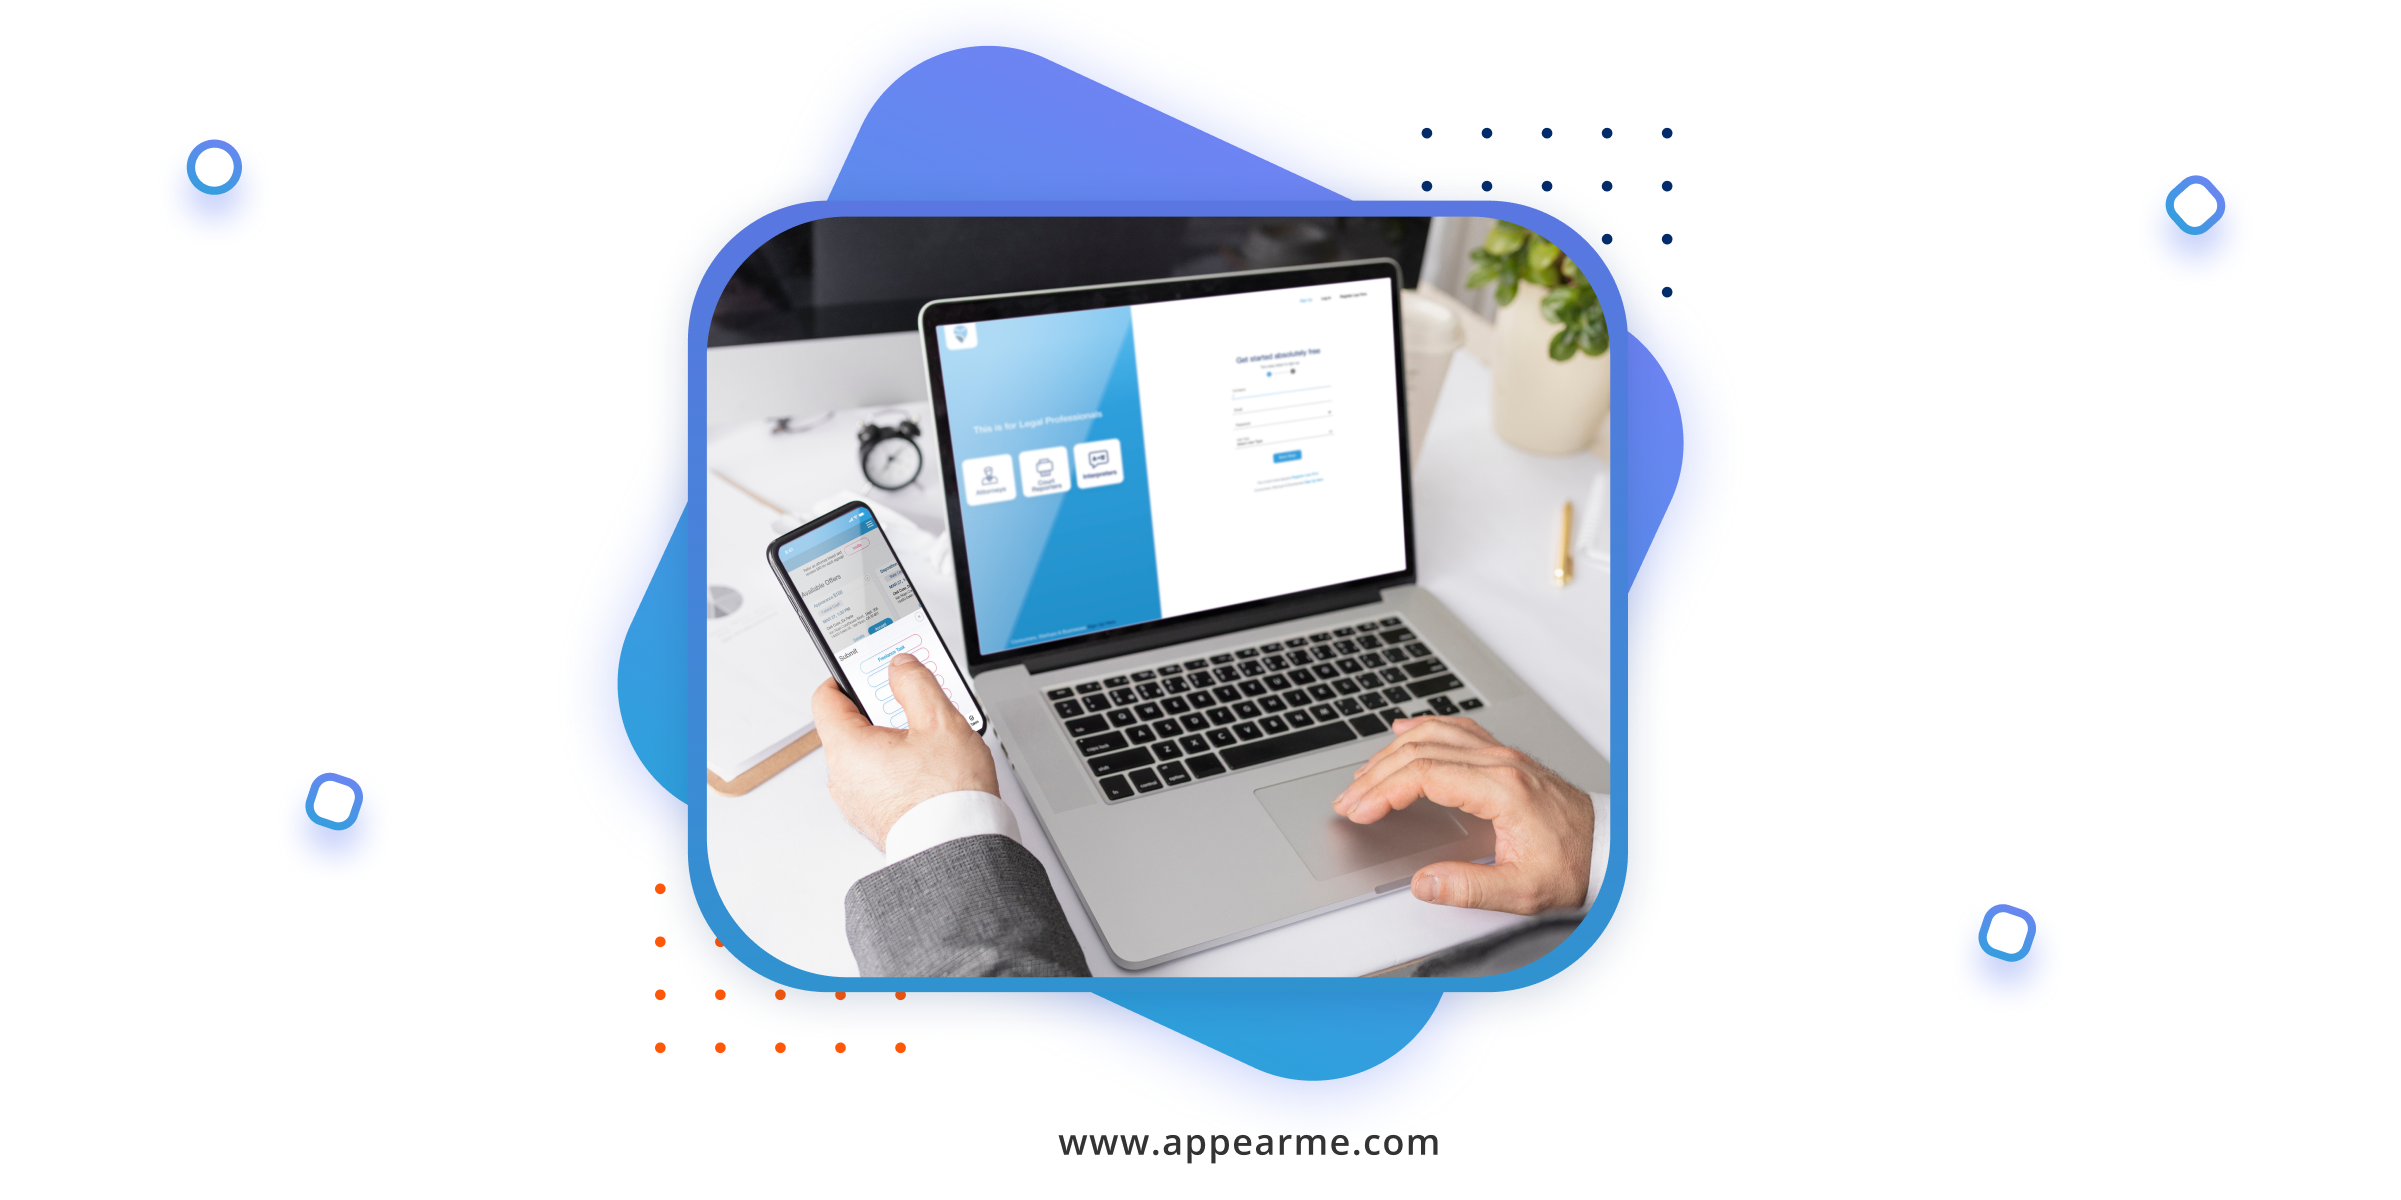 AppearMe: Delegate Your Legal Work to a Freelance Attorney